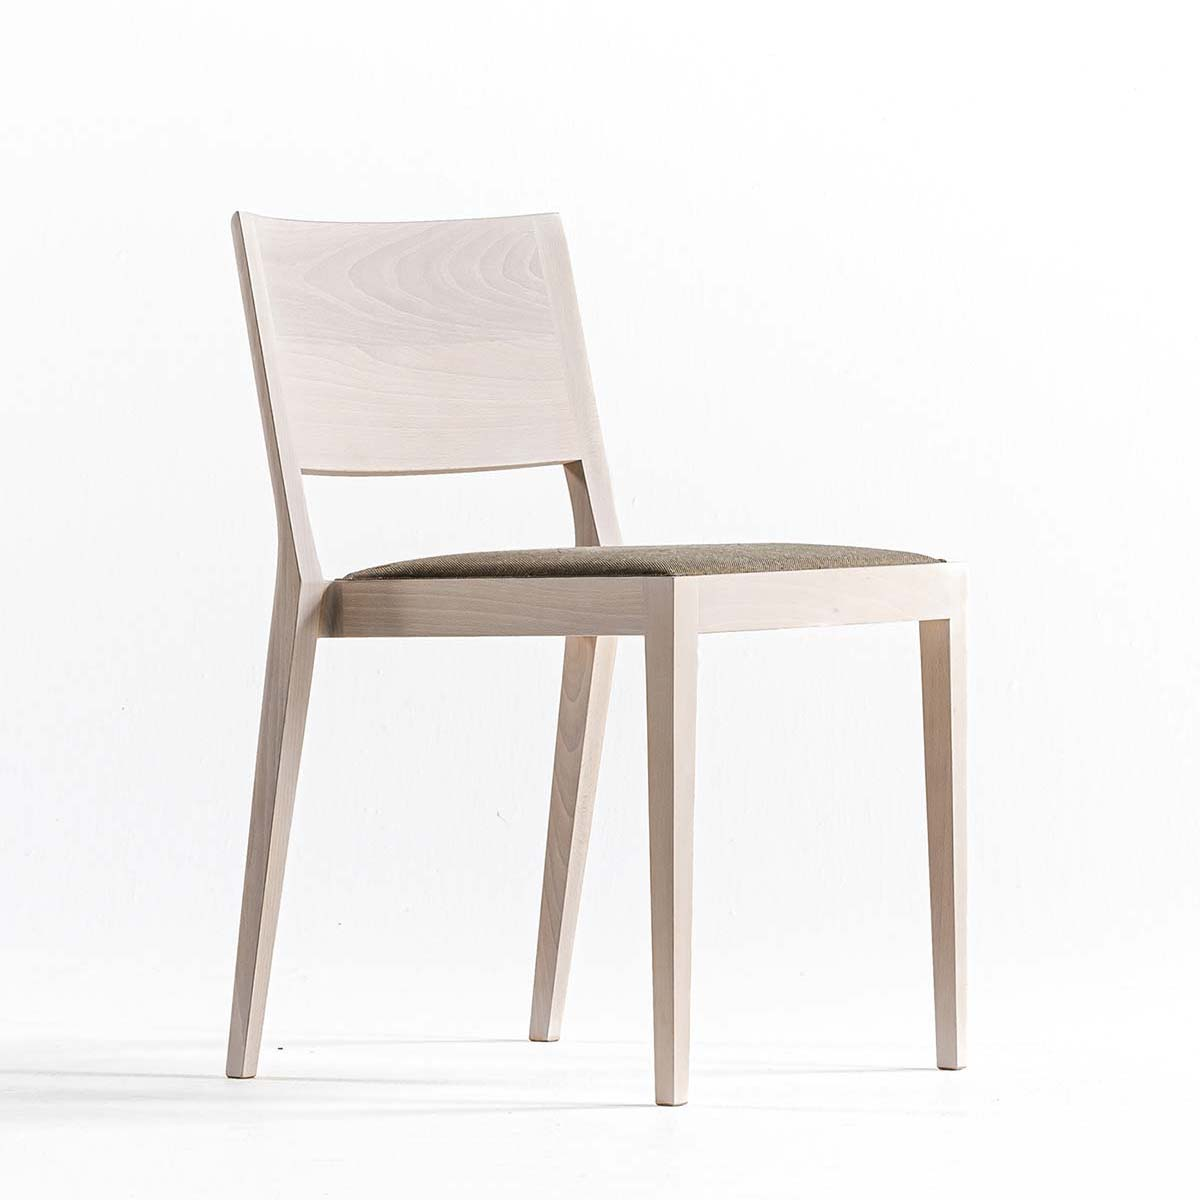 A chair in the forest by Time & Style